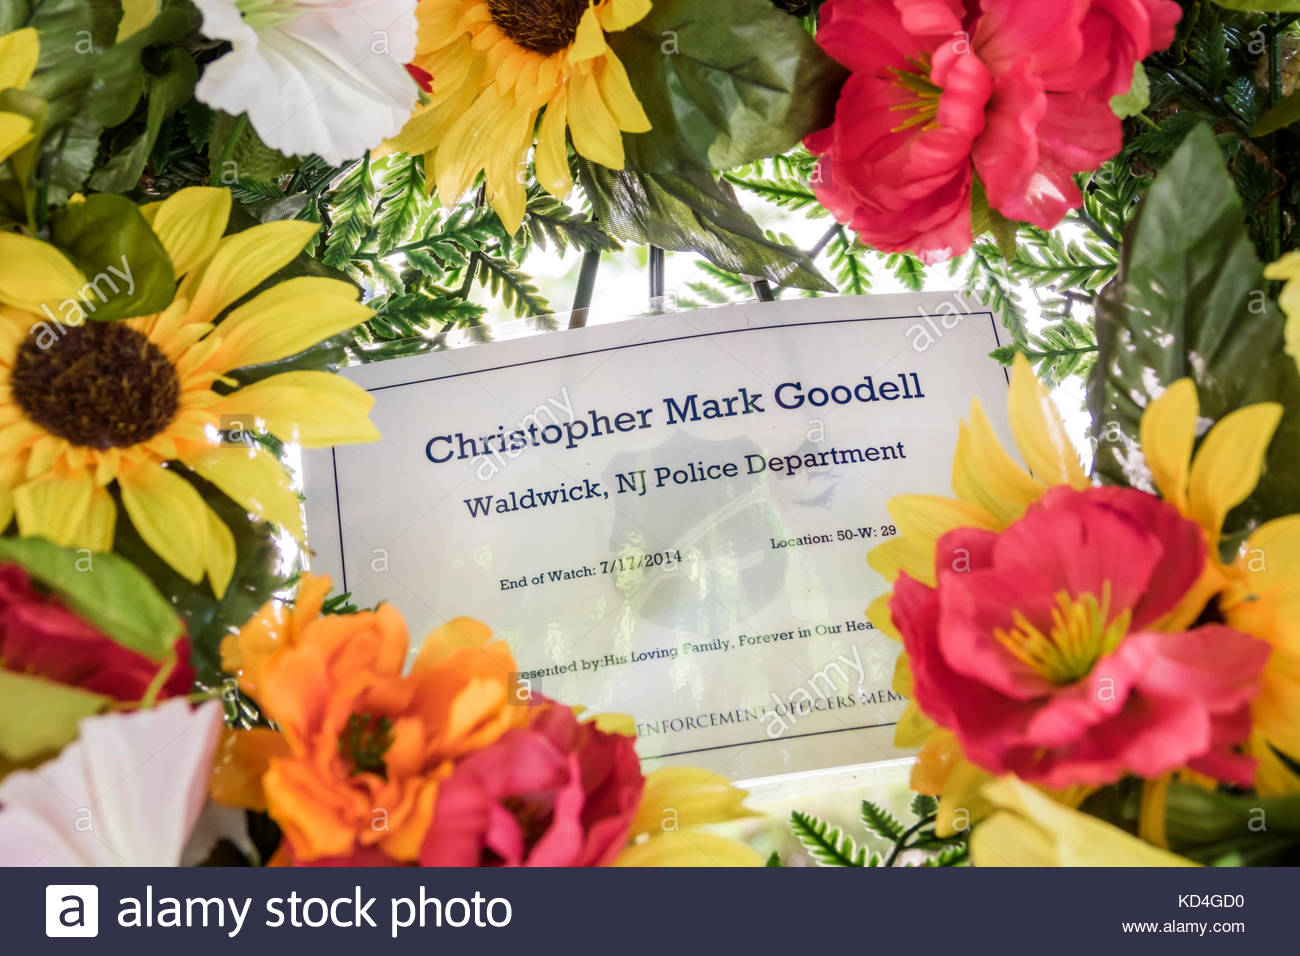 Washington DC District of Columbia National Law Enforcement Officers Memorial wreath flowers Waldwick New Jersey - Stock Image